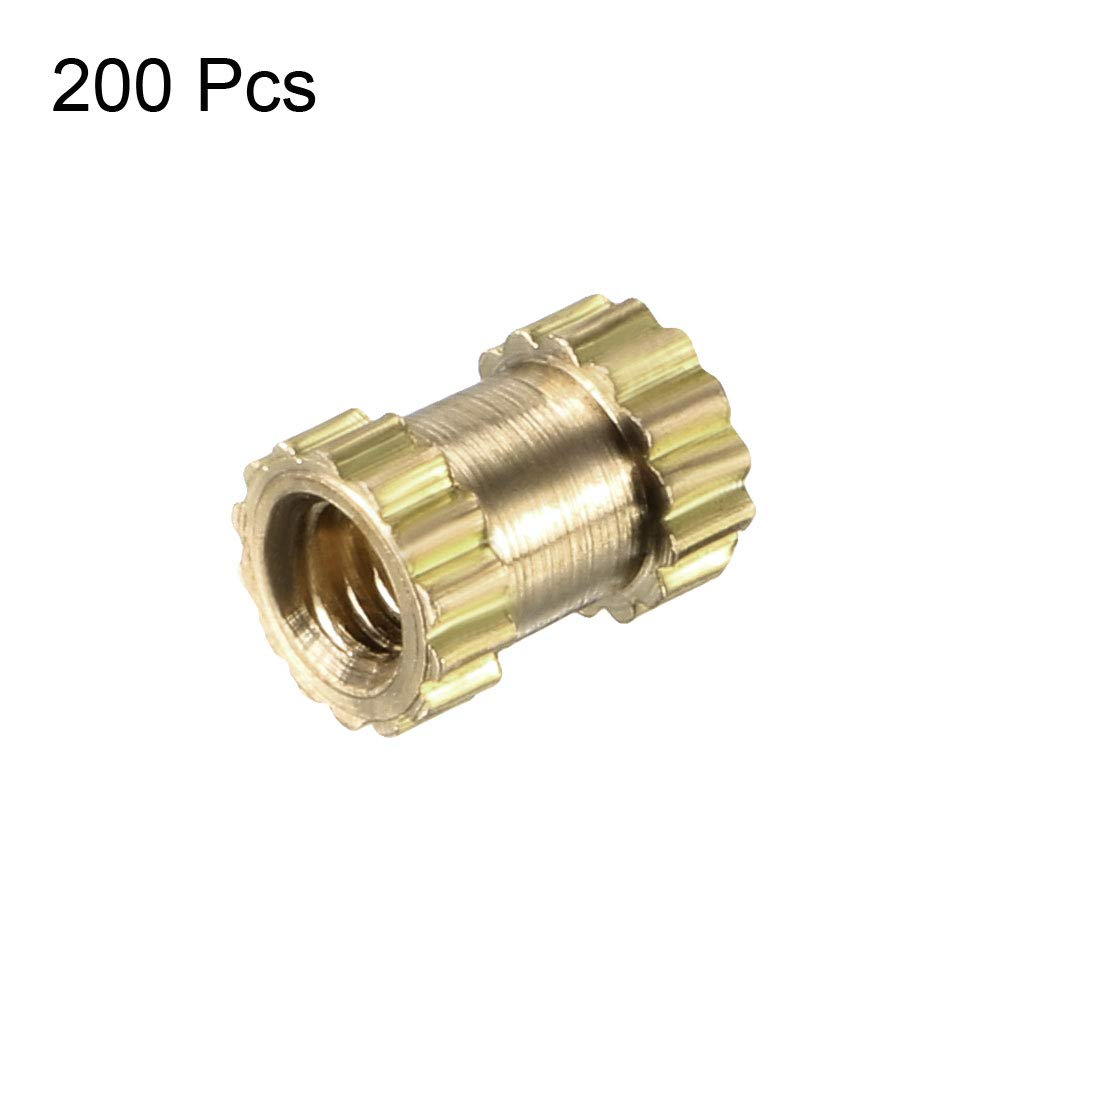 Pack of 100 M3 x 10mm L OD Female Thread Brass Embedment Nuts x 5mm uxcell Knurled Threaded Insert